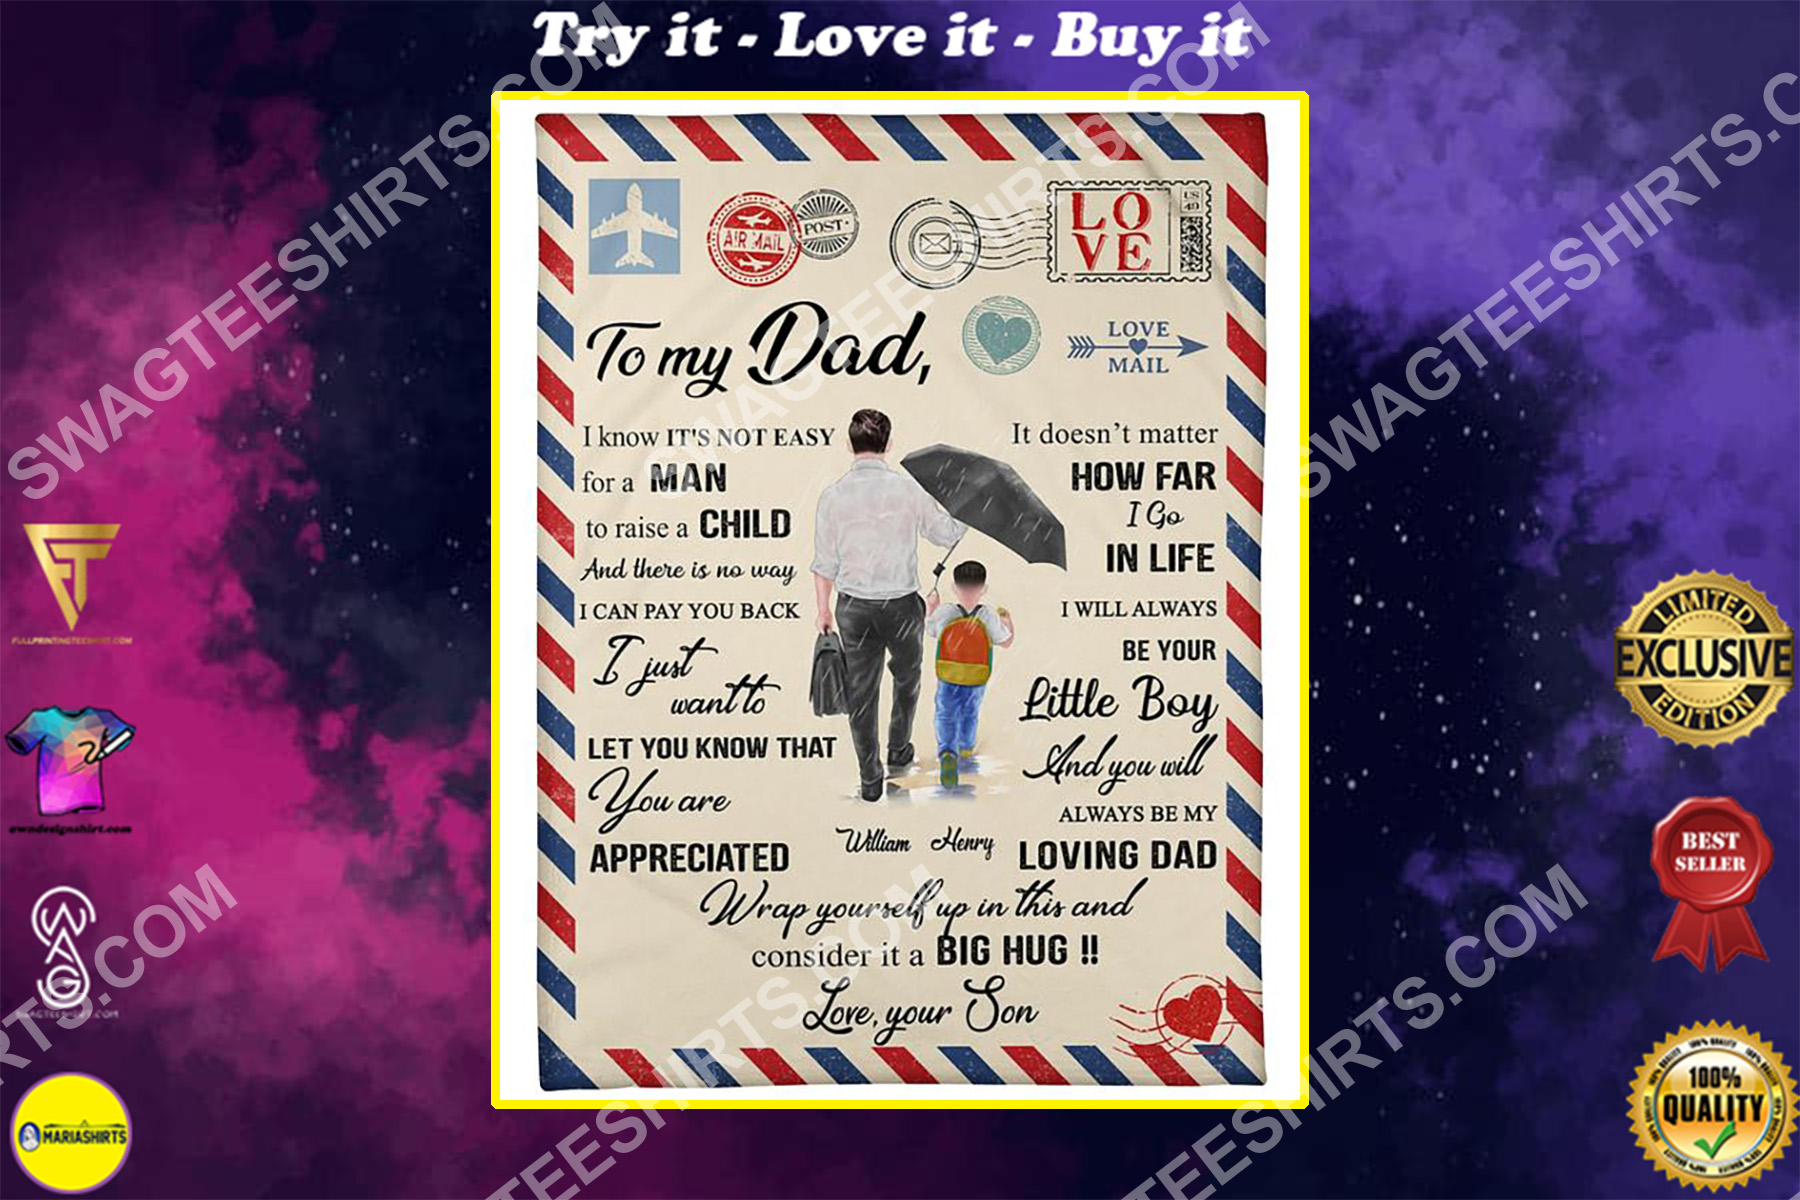 air mail to my dad i know its not easy for a man to raise a child blanket